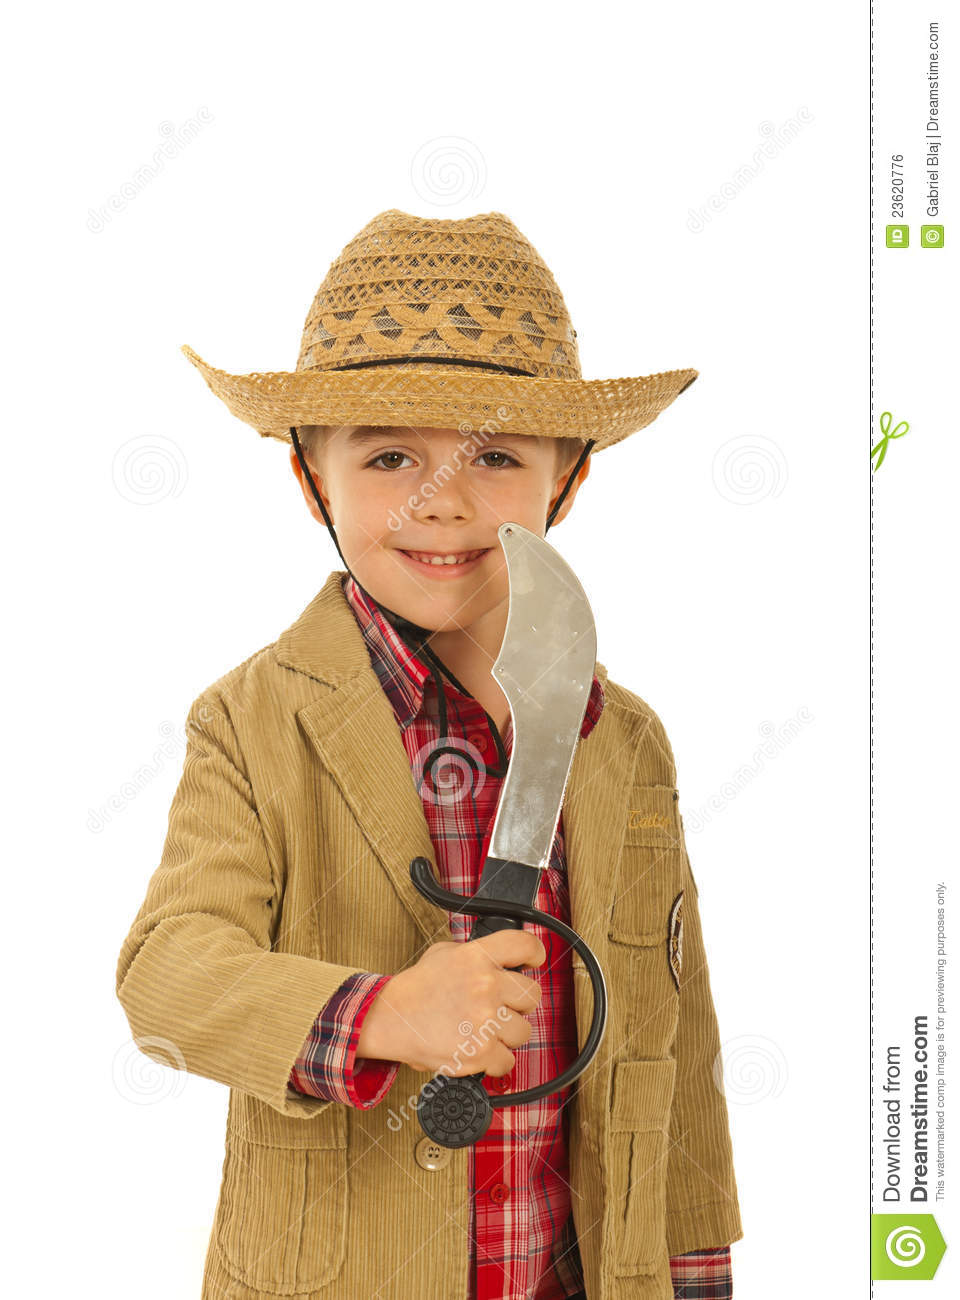 23fd1fbe8007b Little cowboy with sword stock photo. Image of hold